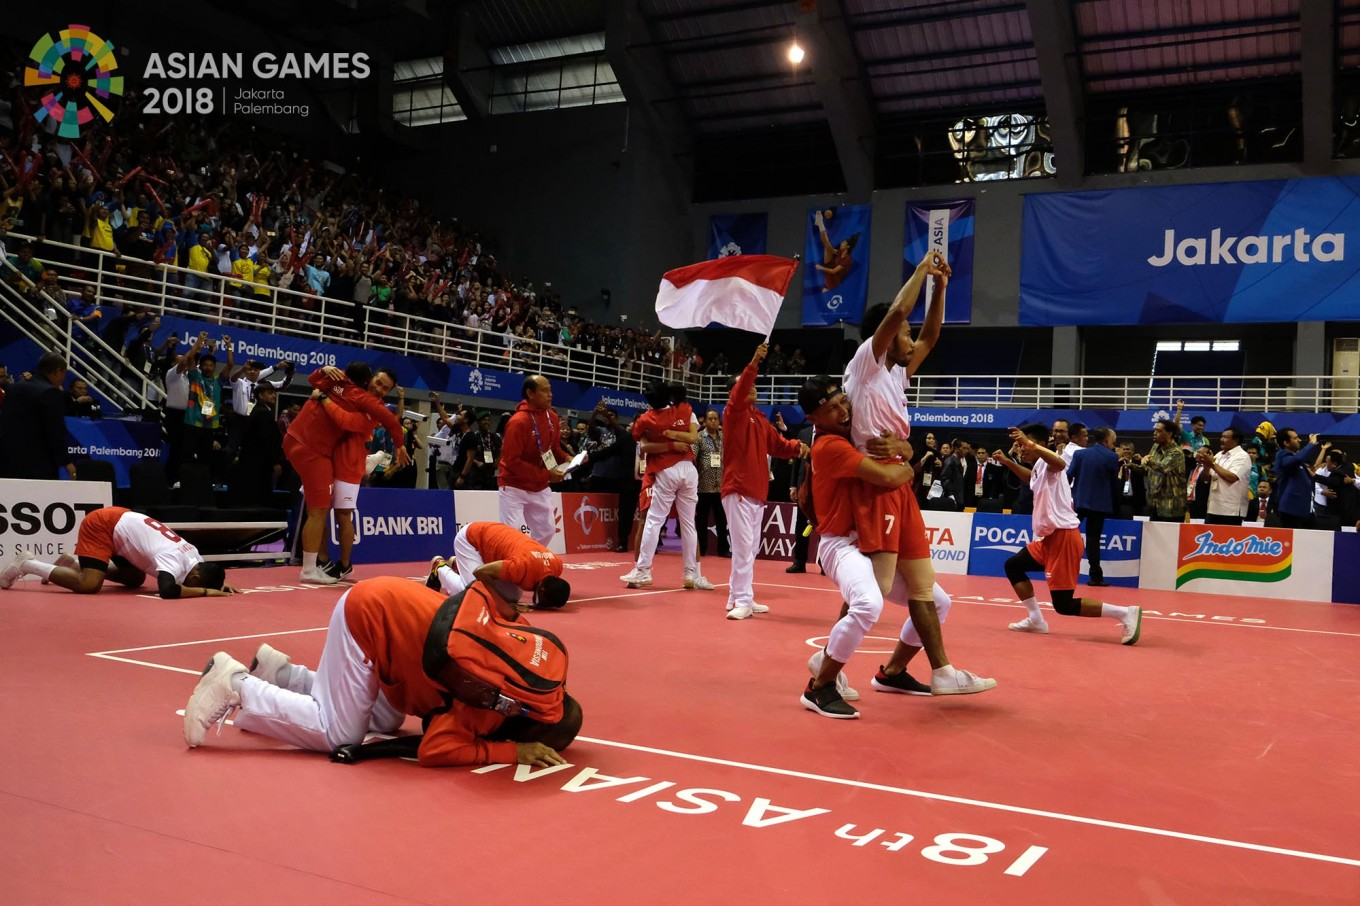 Indonesian players celebrate after winning gold in the sepaktakraw men's quadrant final during the 2018 Asian Games in Palembang on Sept.1. JP/ Jerry Adiguna